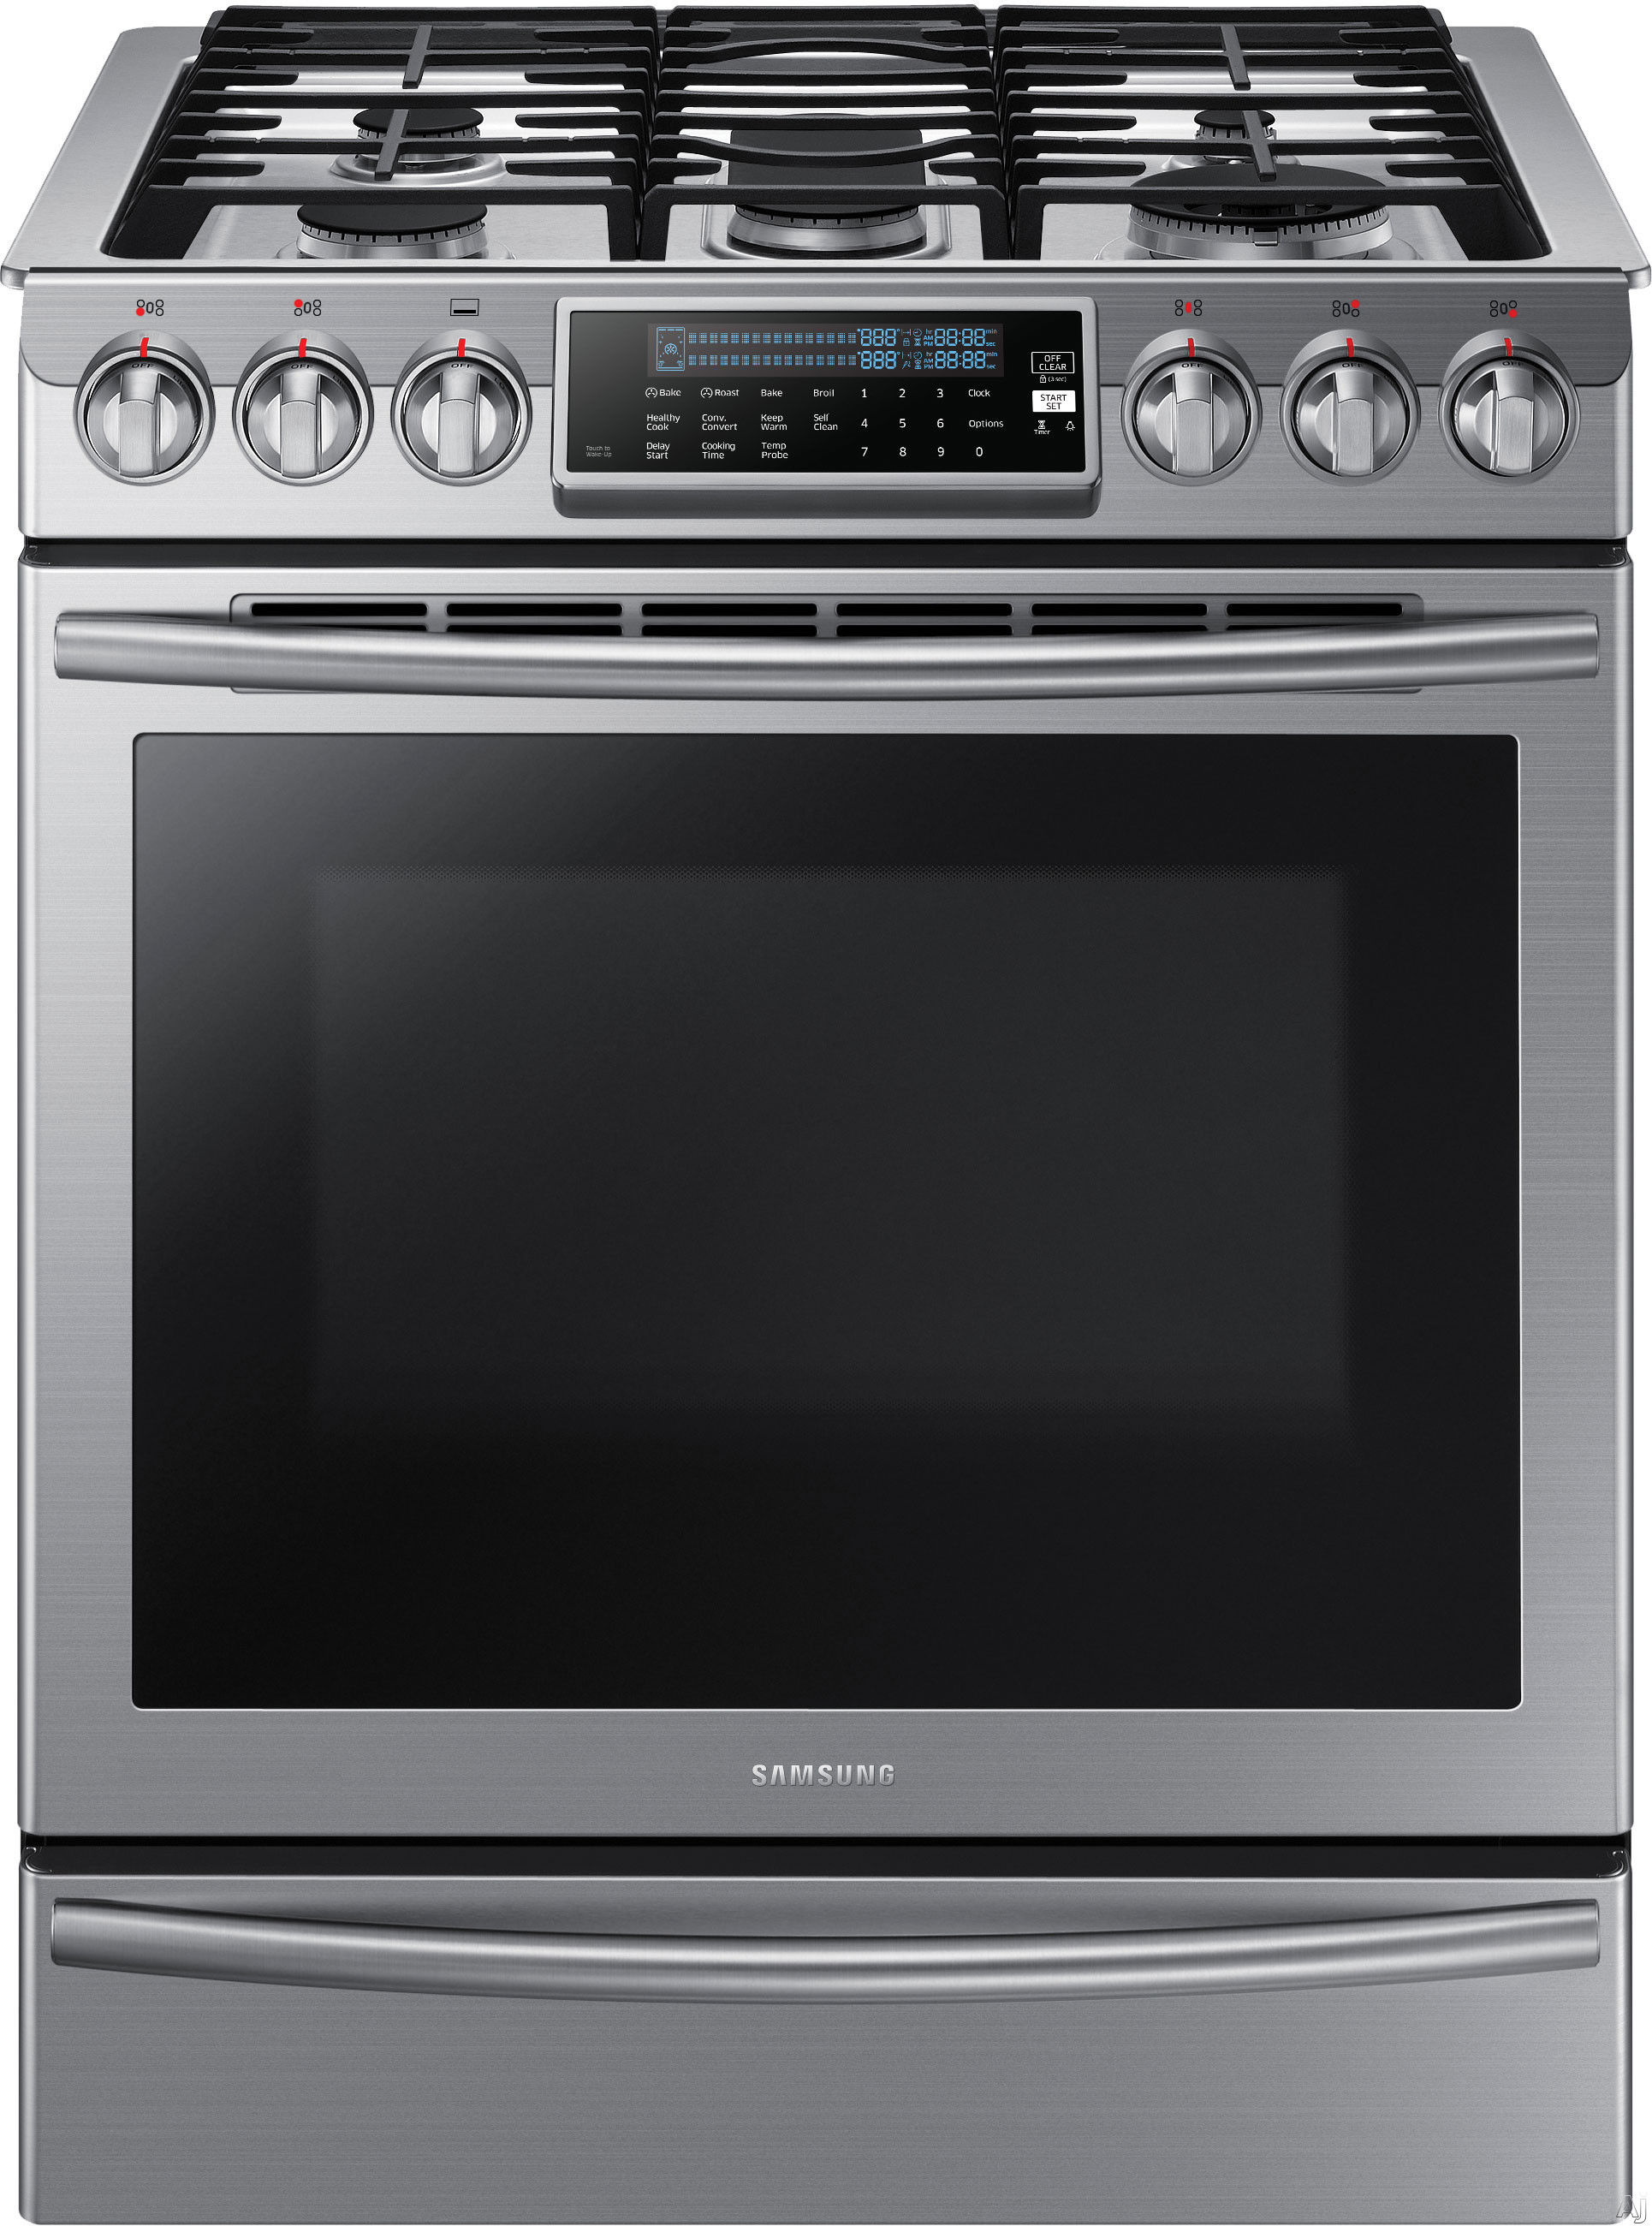 Samsung NX58H9500WS 30 Inch Slide-In Gas Range with 5.8 cu. ft. Oven, True Convection, 5 Sealed Burners, 18,000 BTU True Dual Power Burner, Reversible Griddle/Grill, Temperature Probe, Star-K Certified Sabbath Mode, Warming Drawer and Self-Cleaning Mode: